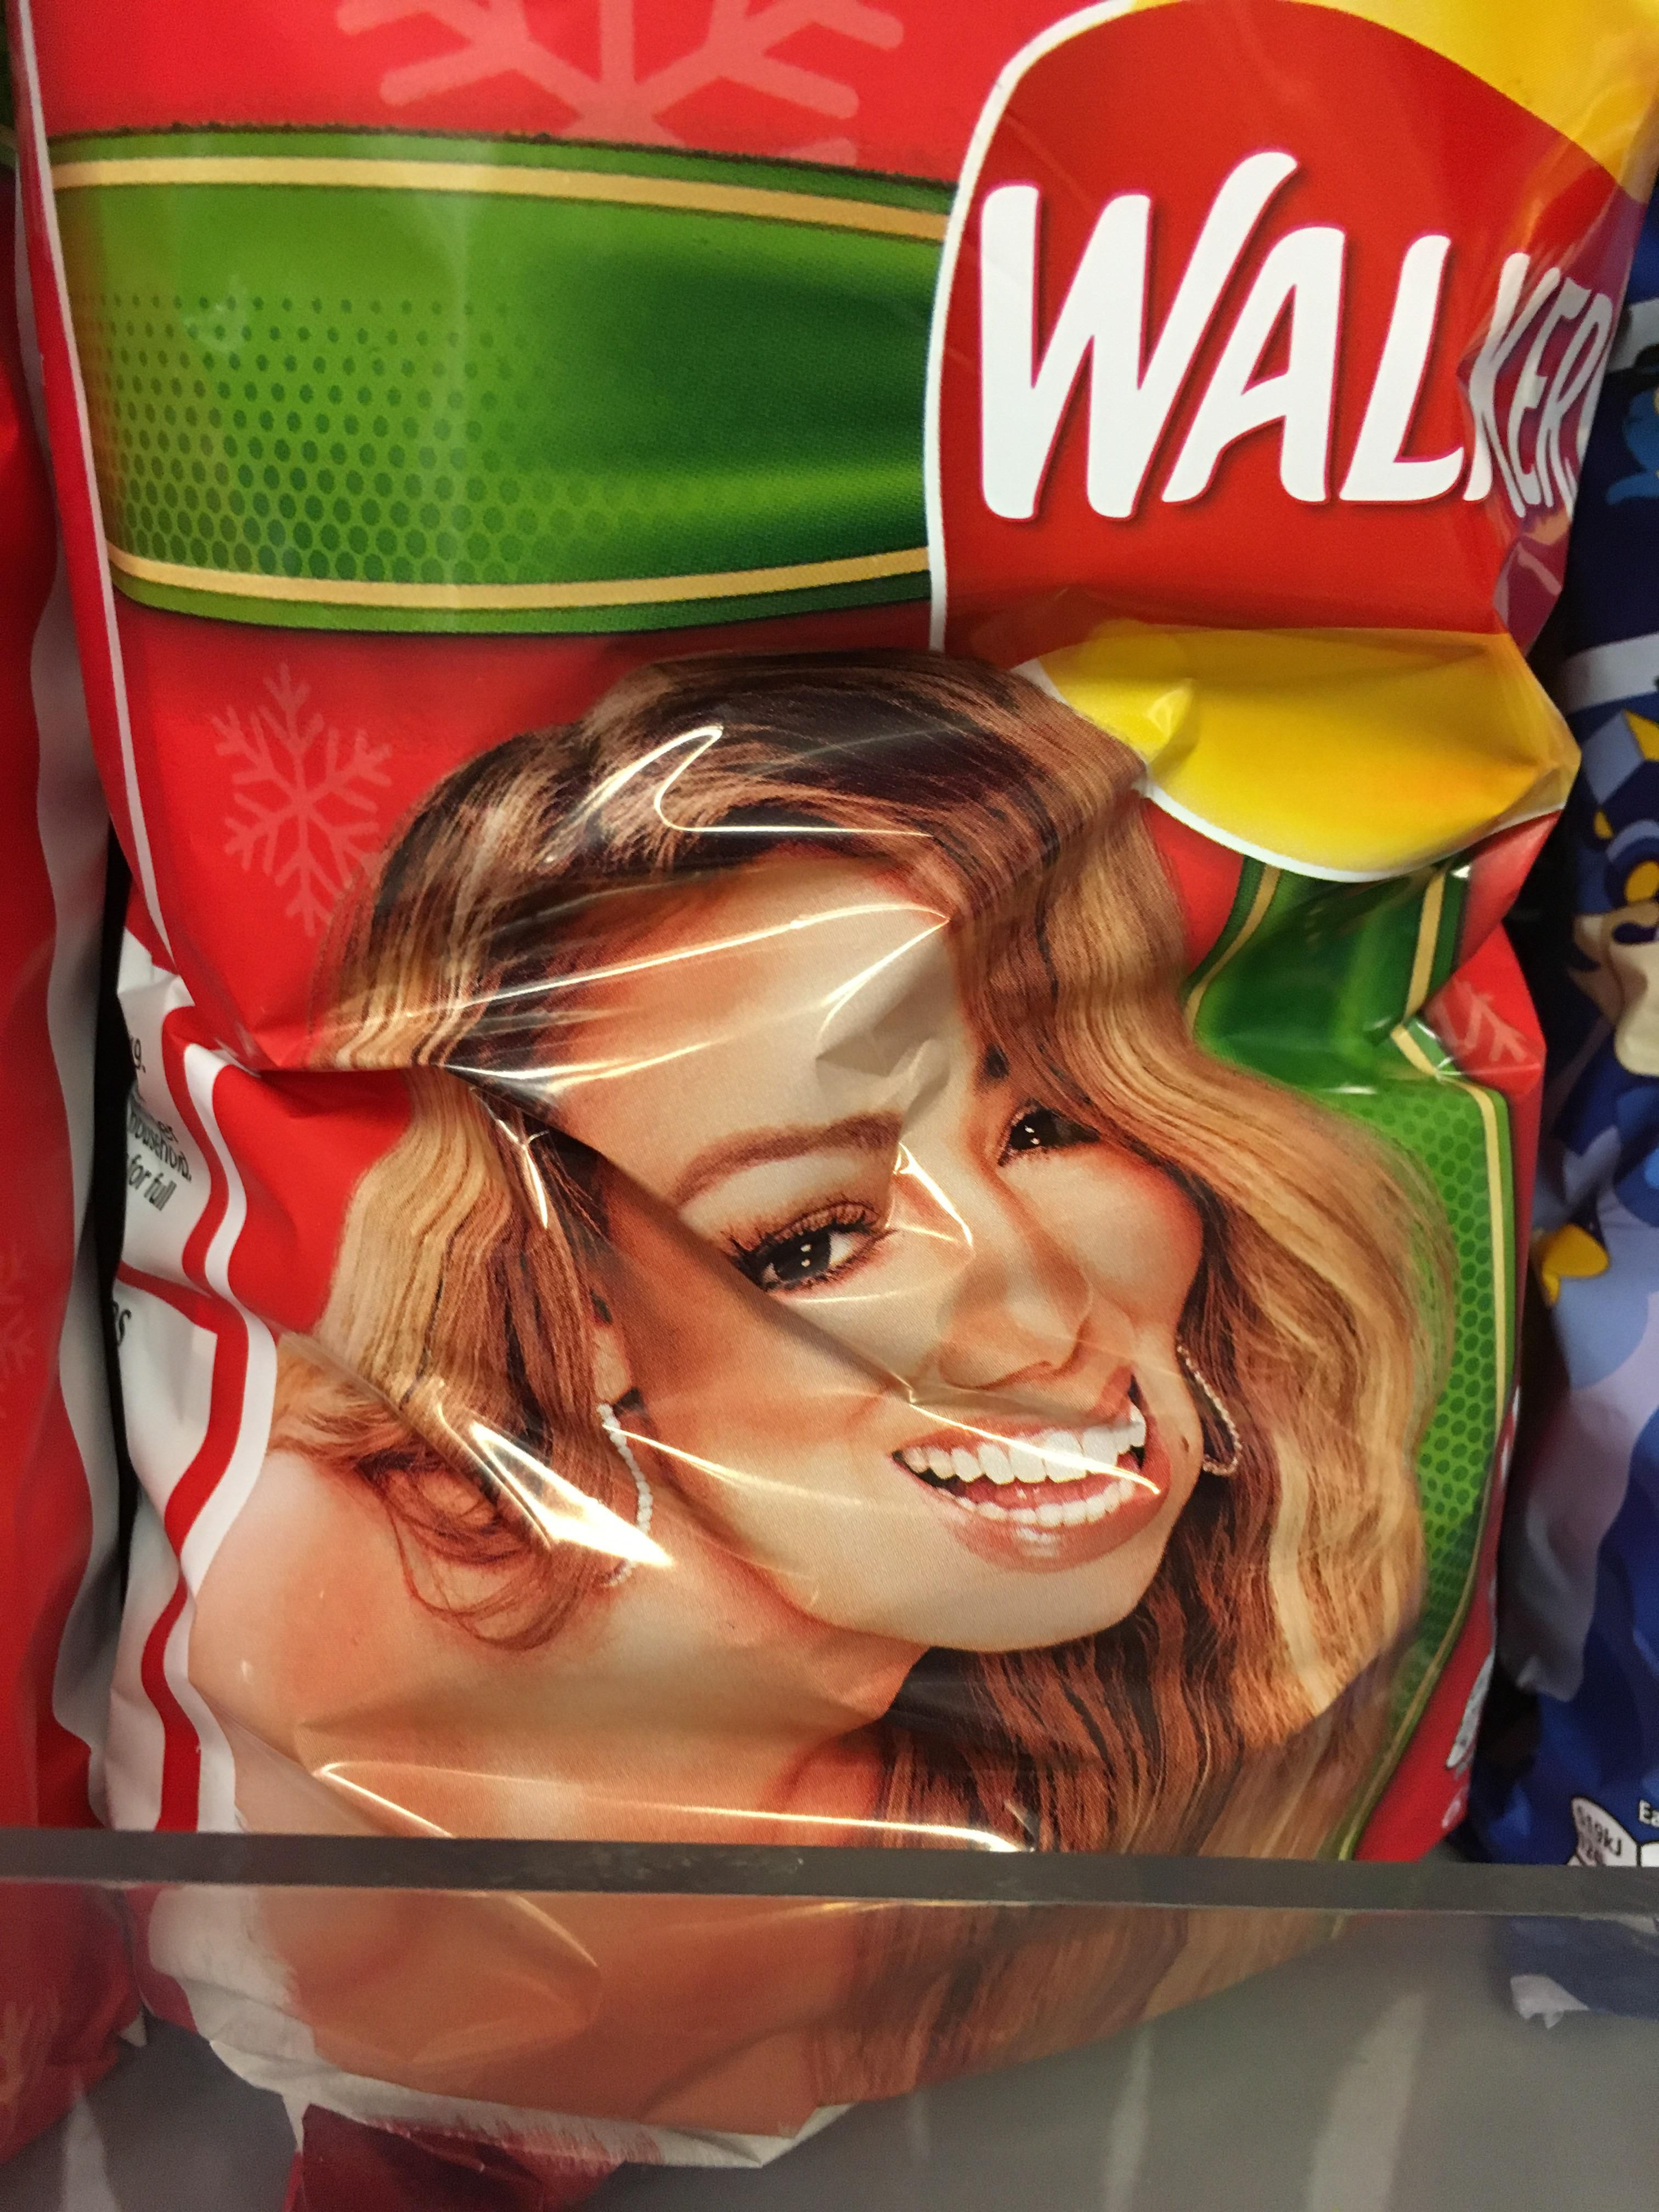 This is why you don't put people on packaging